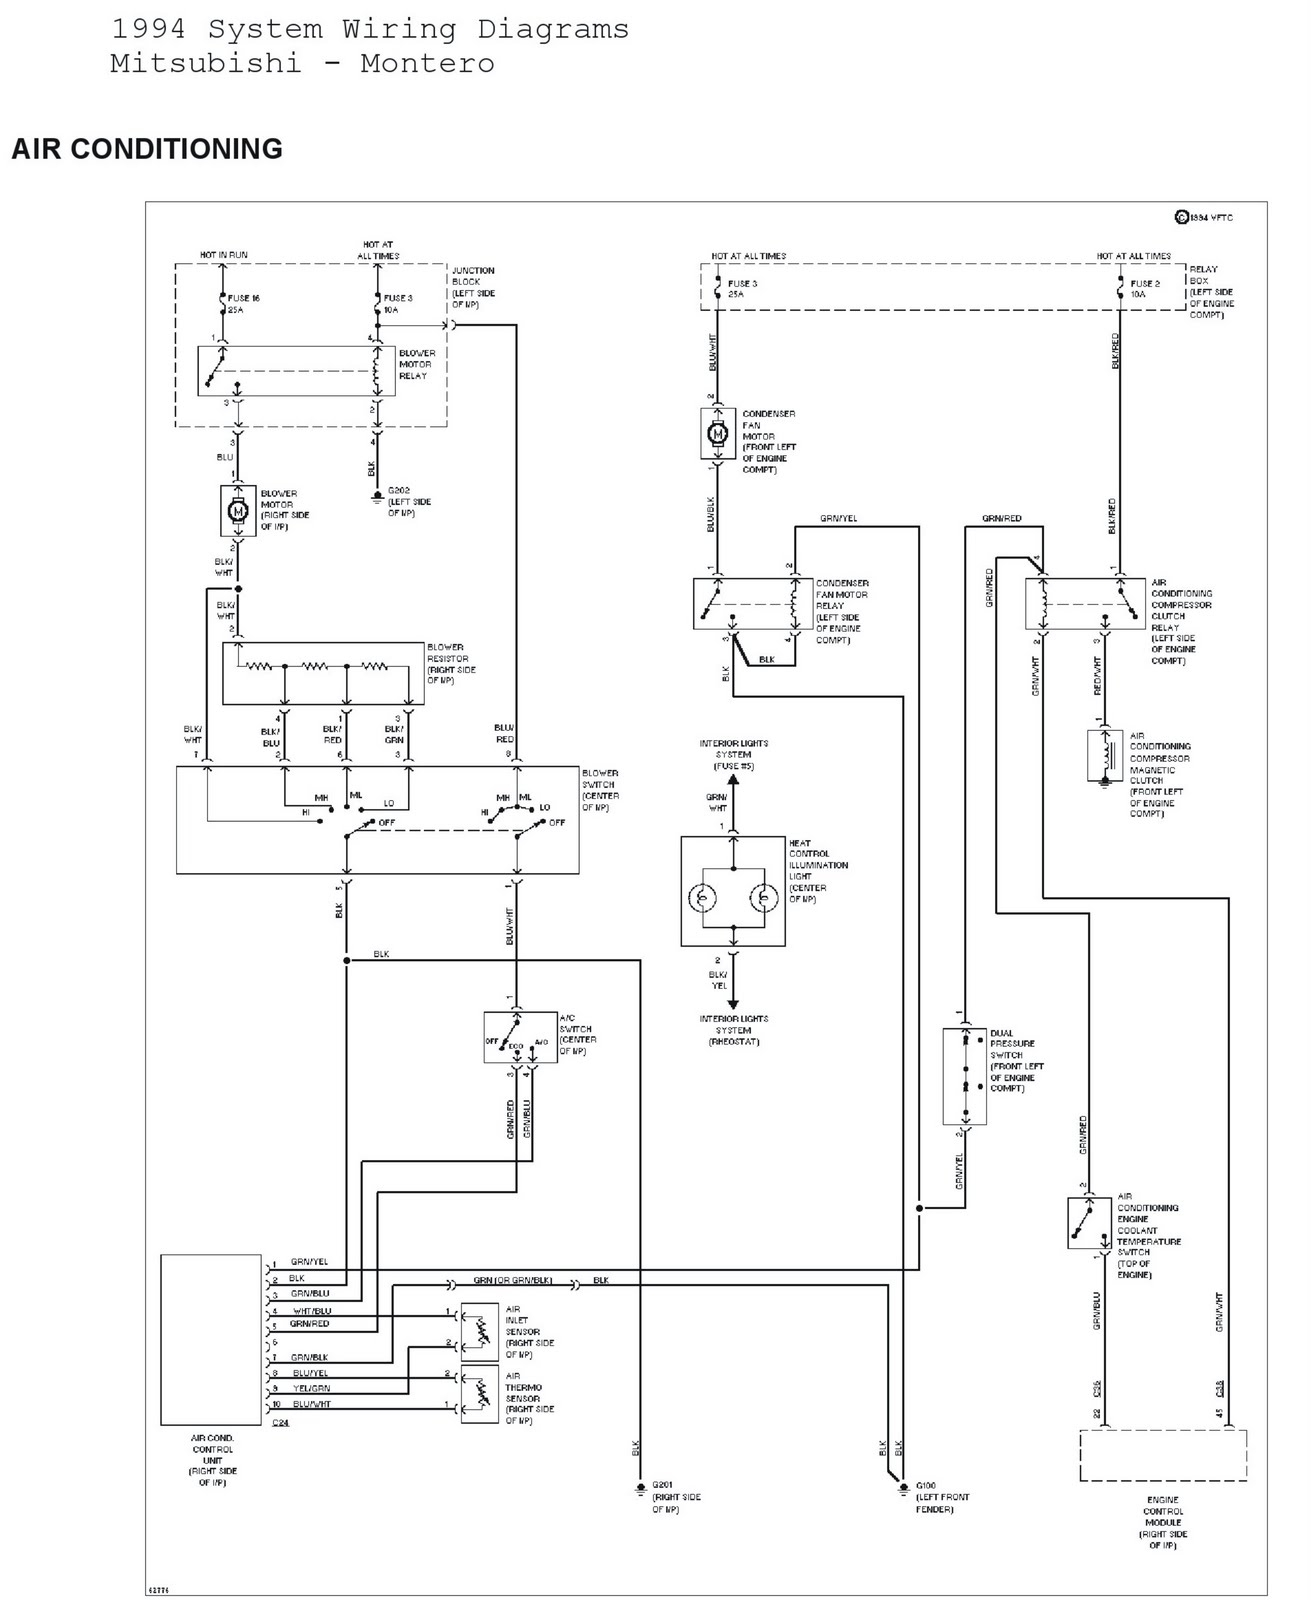 System Wiring Diagrams Air Conditioning Schematic Wiring Diagrams #646667